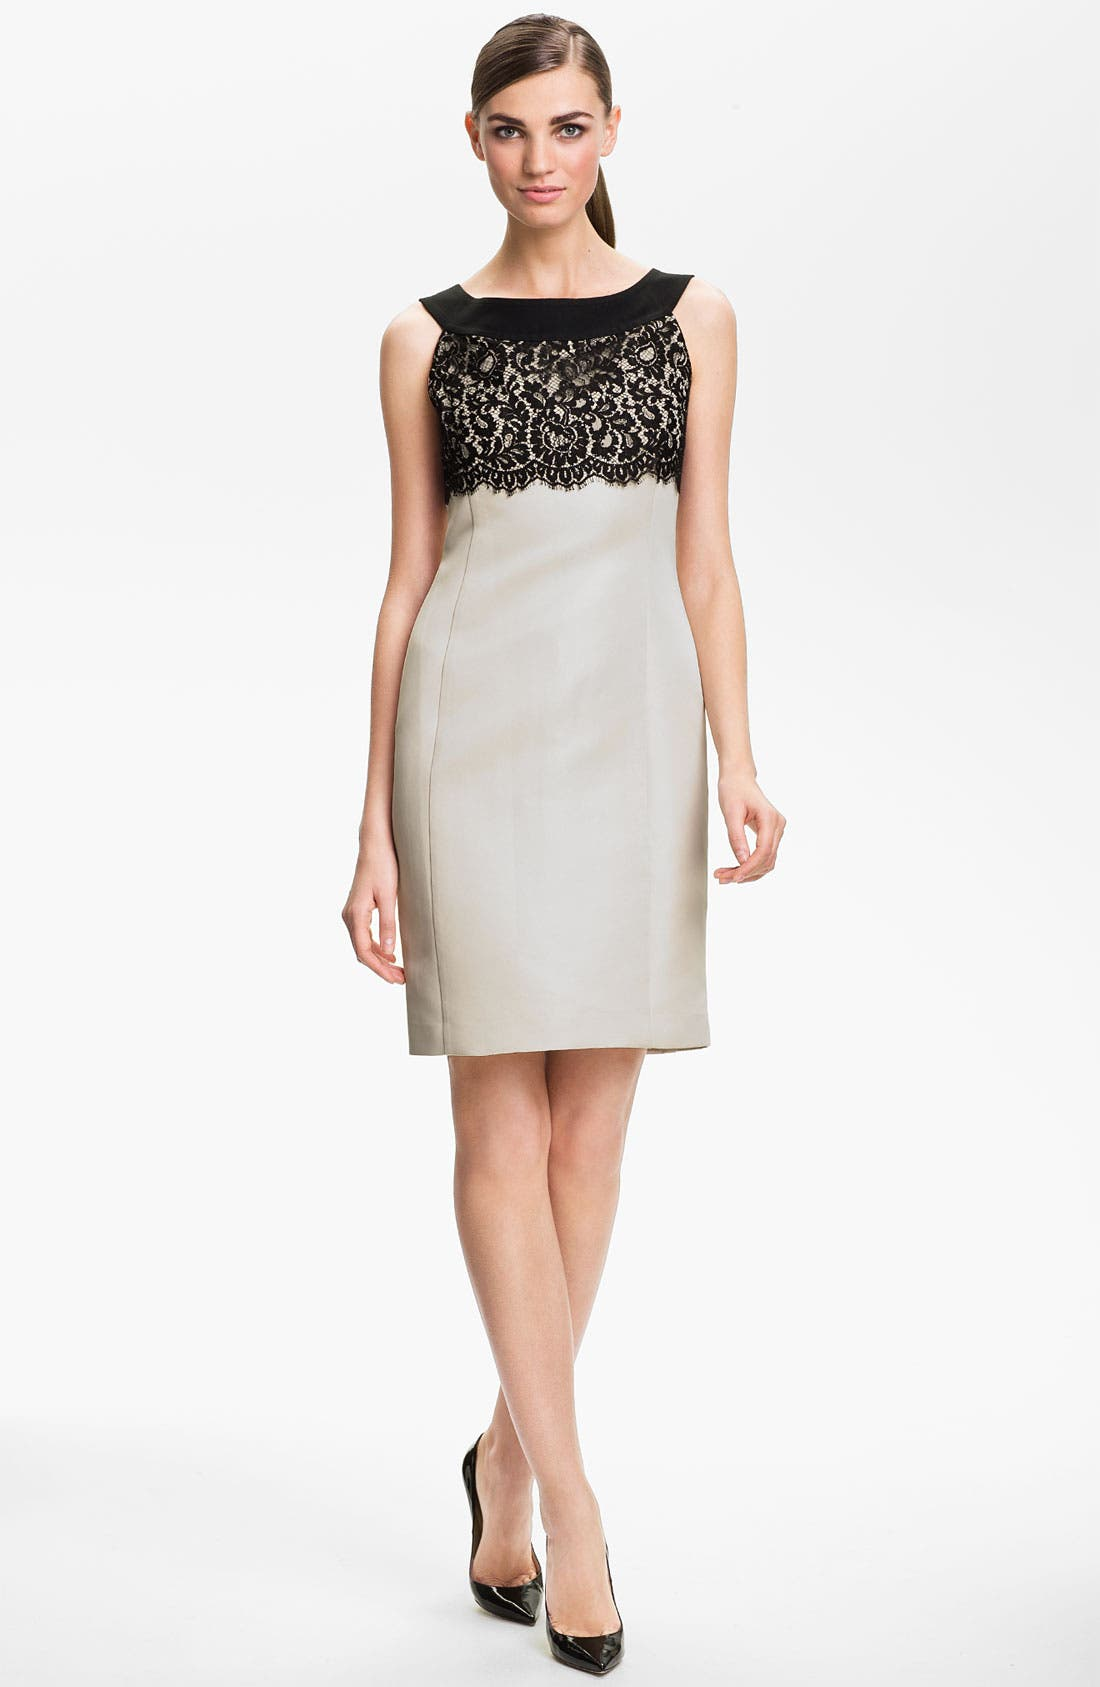 Alternate Image 1 Selected - St. John Collection Lace & Sequin Sheath Dress